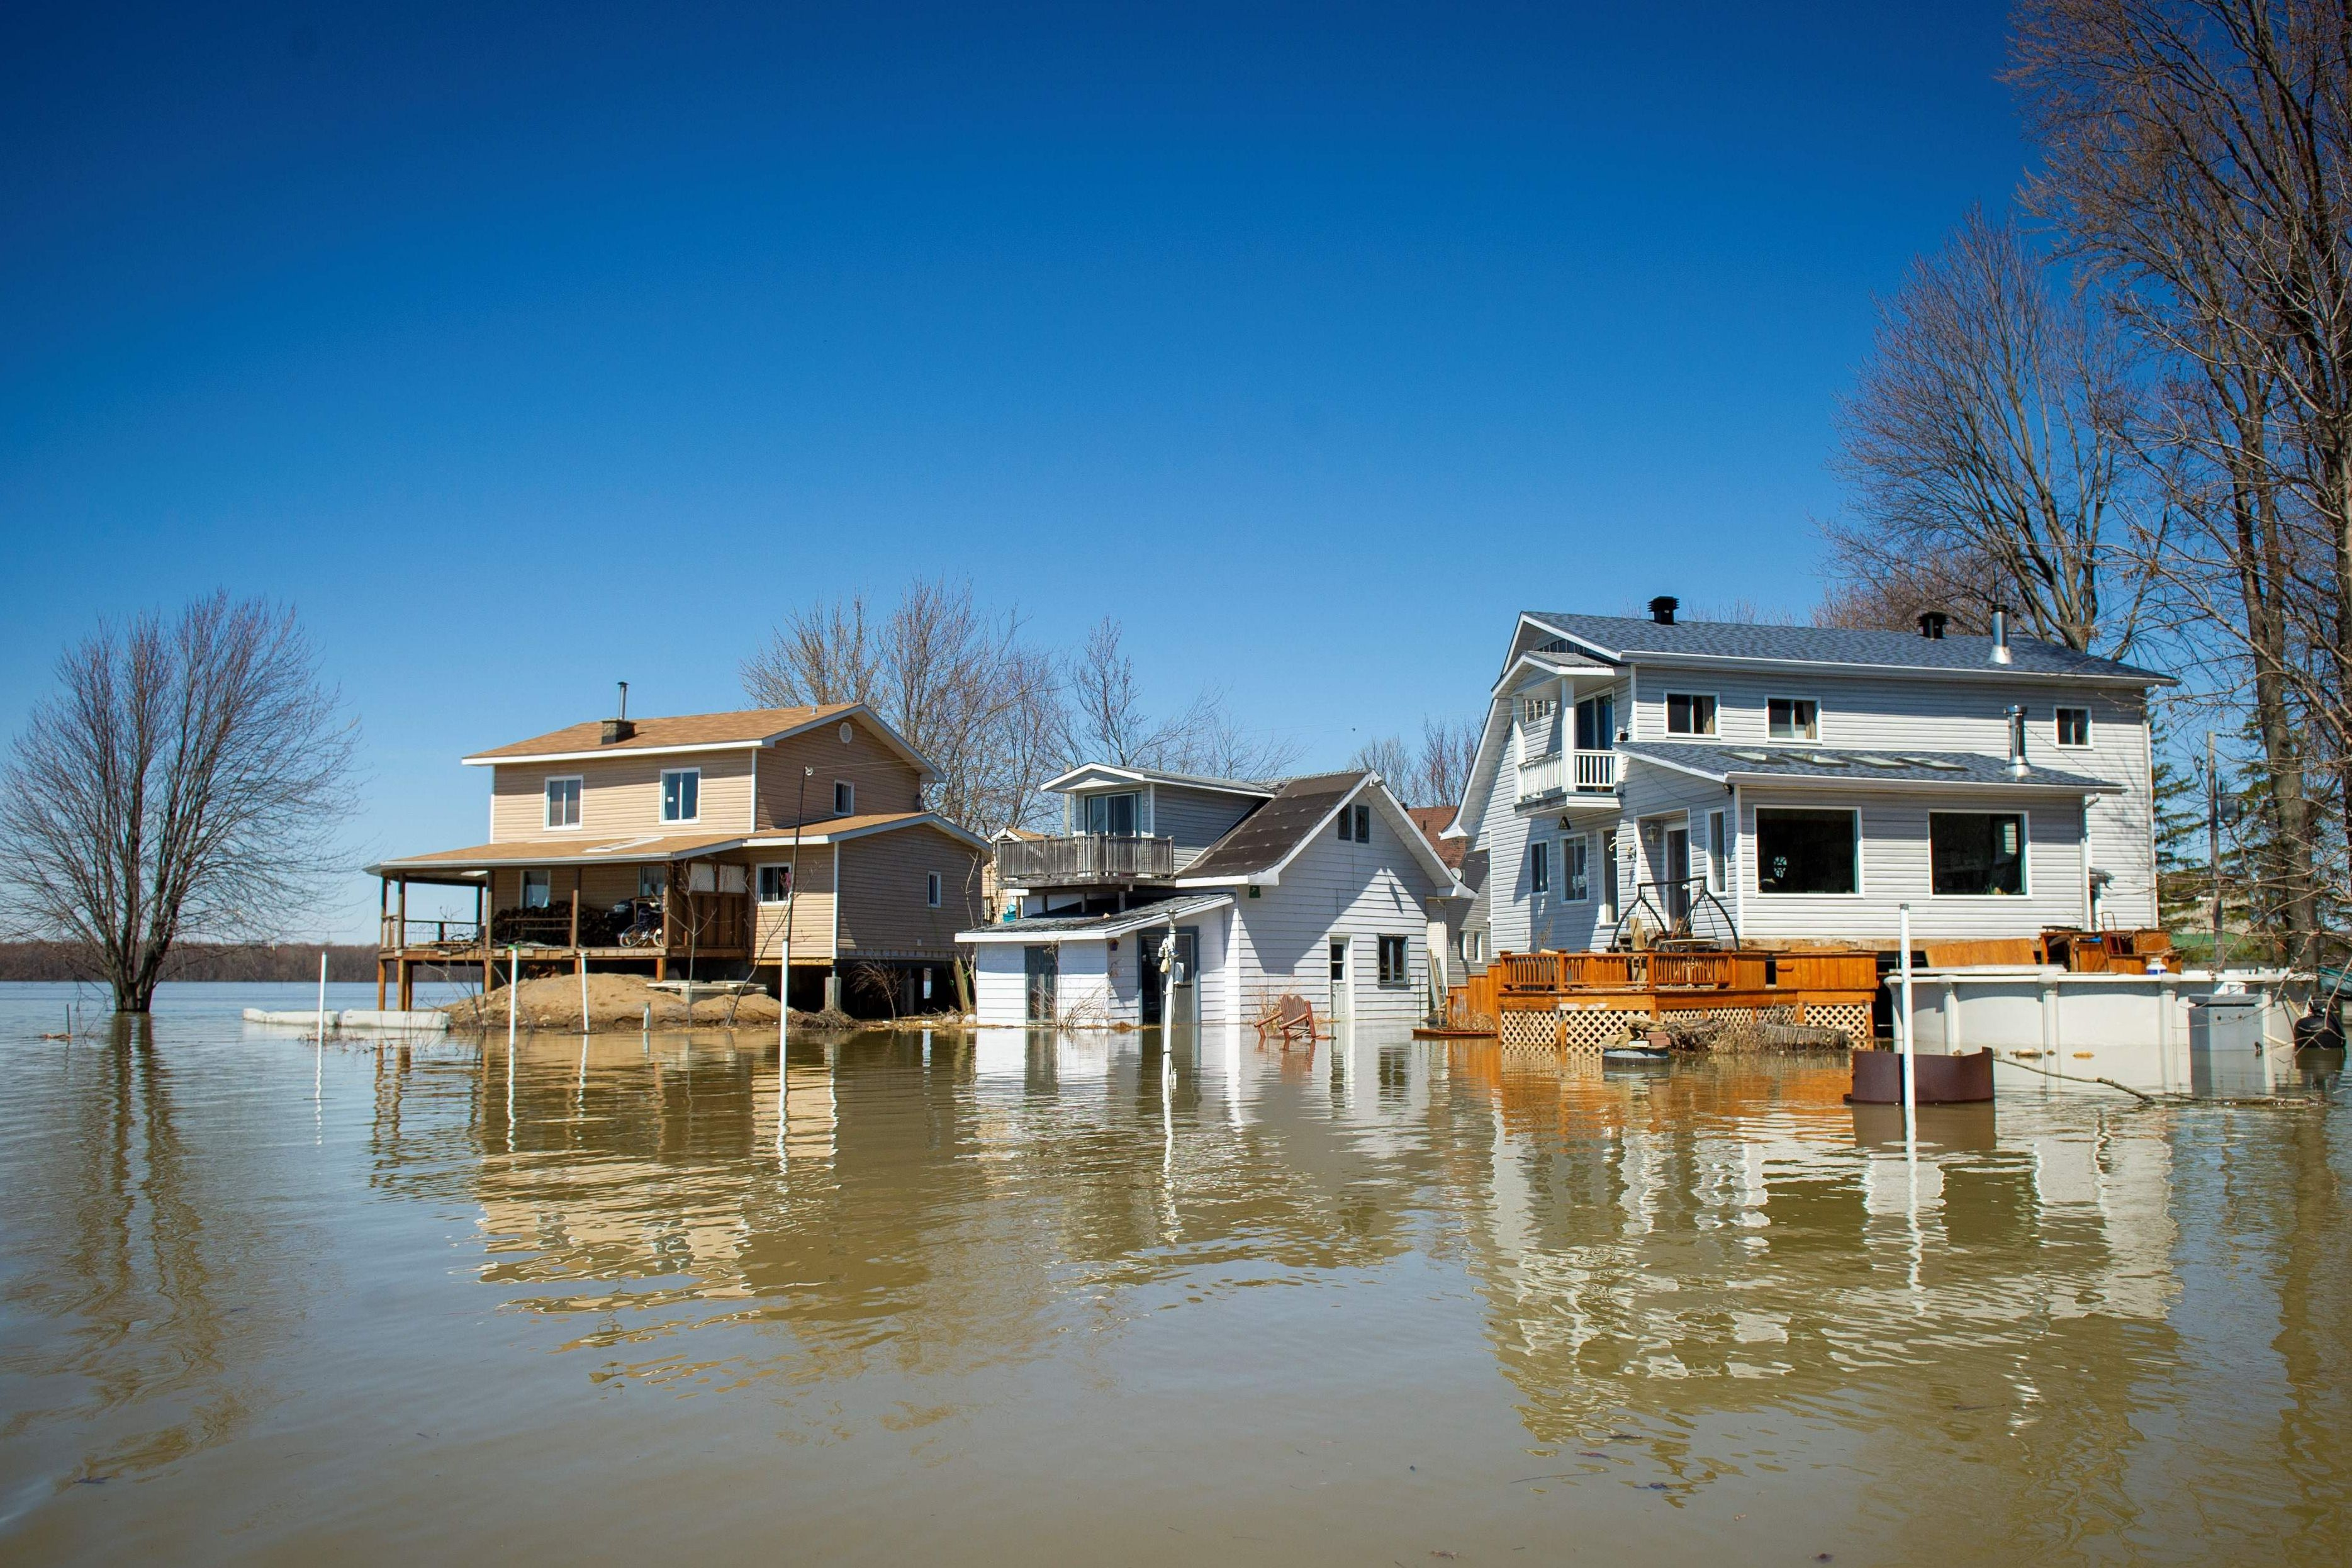 Death, taxes – and flooding: Repeated disasters are the norm, so let's have a better plan